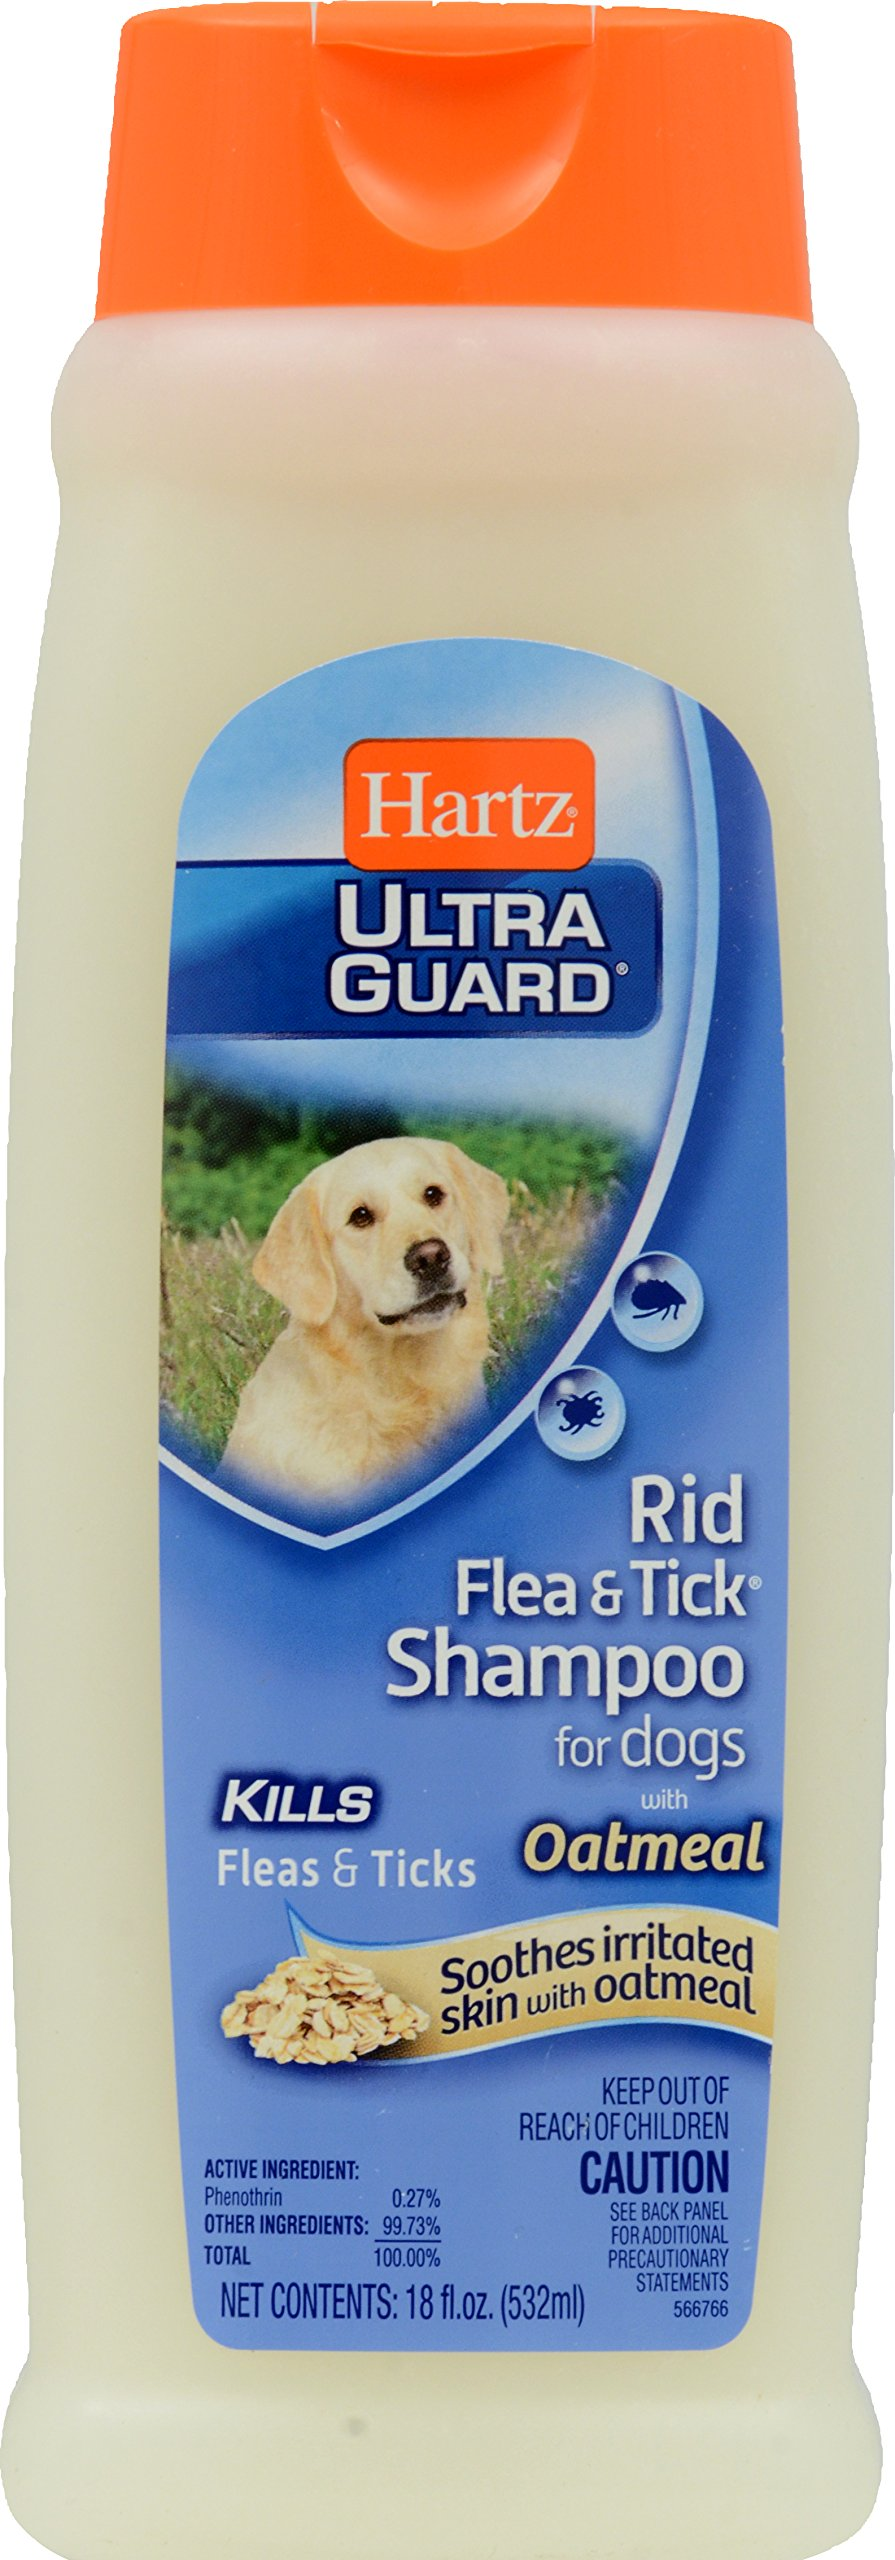 Ultra Guard Rid Flea and Tick Shampoo for Dogs